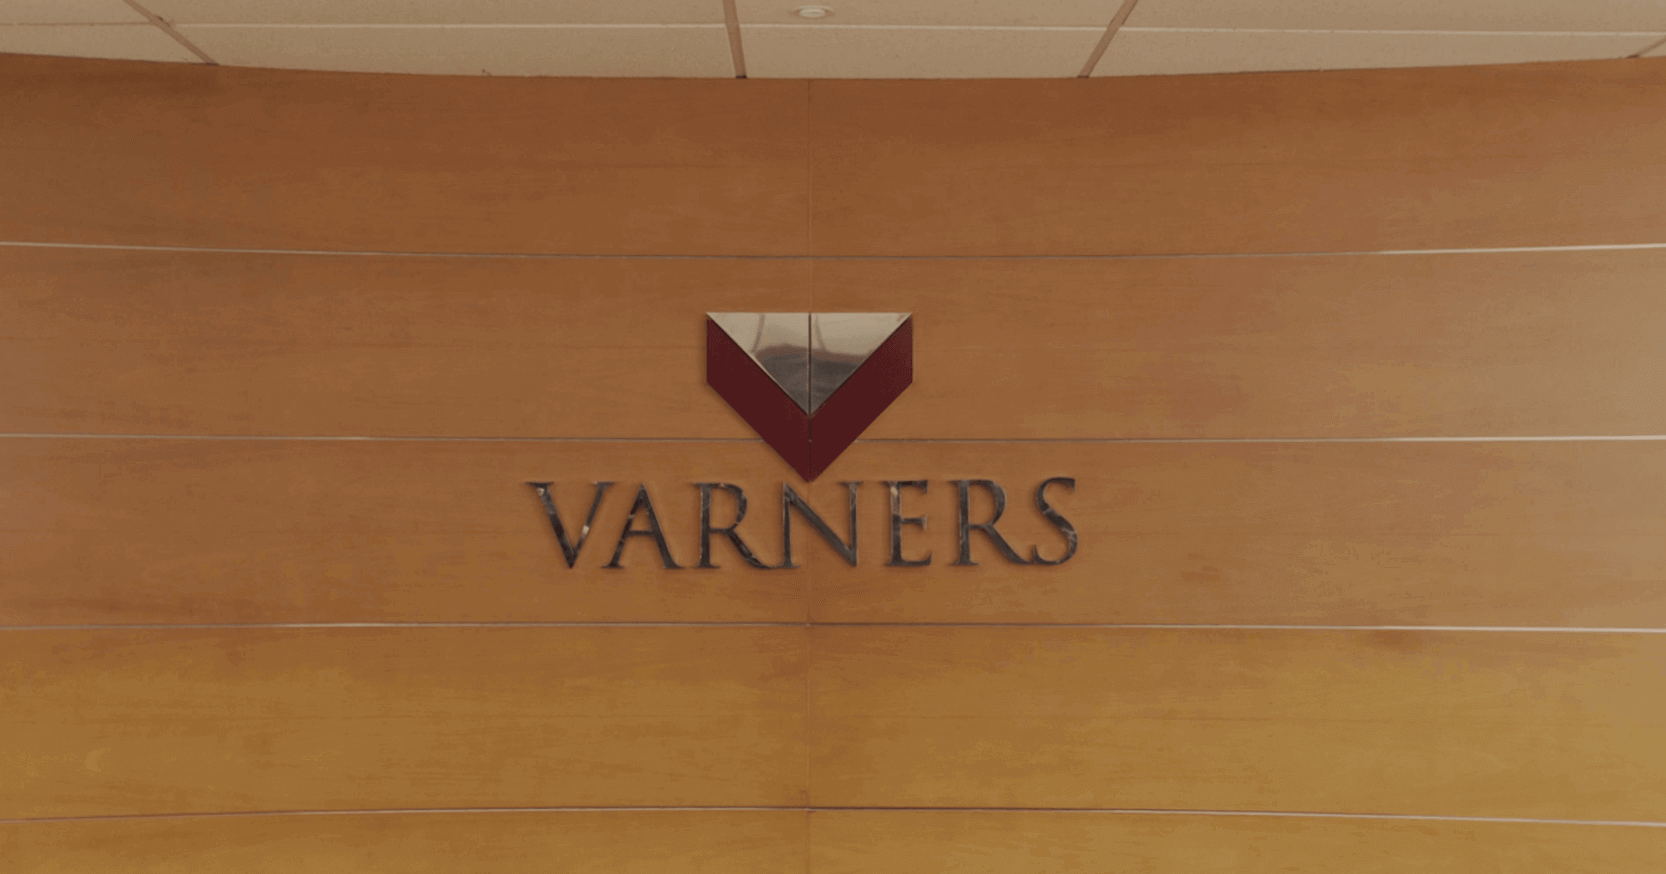 Varners cover image